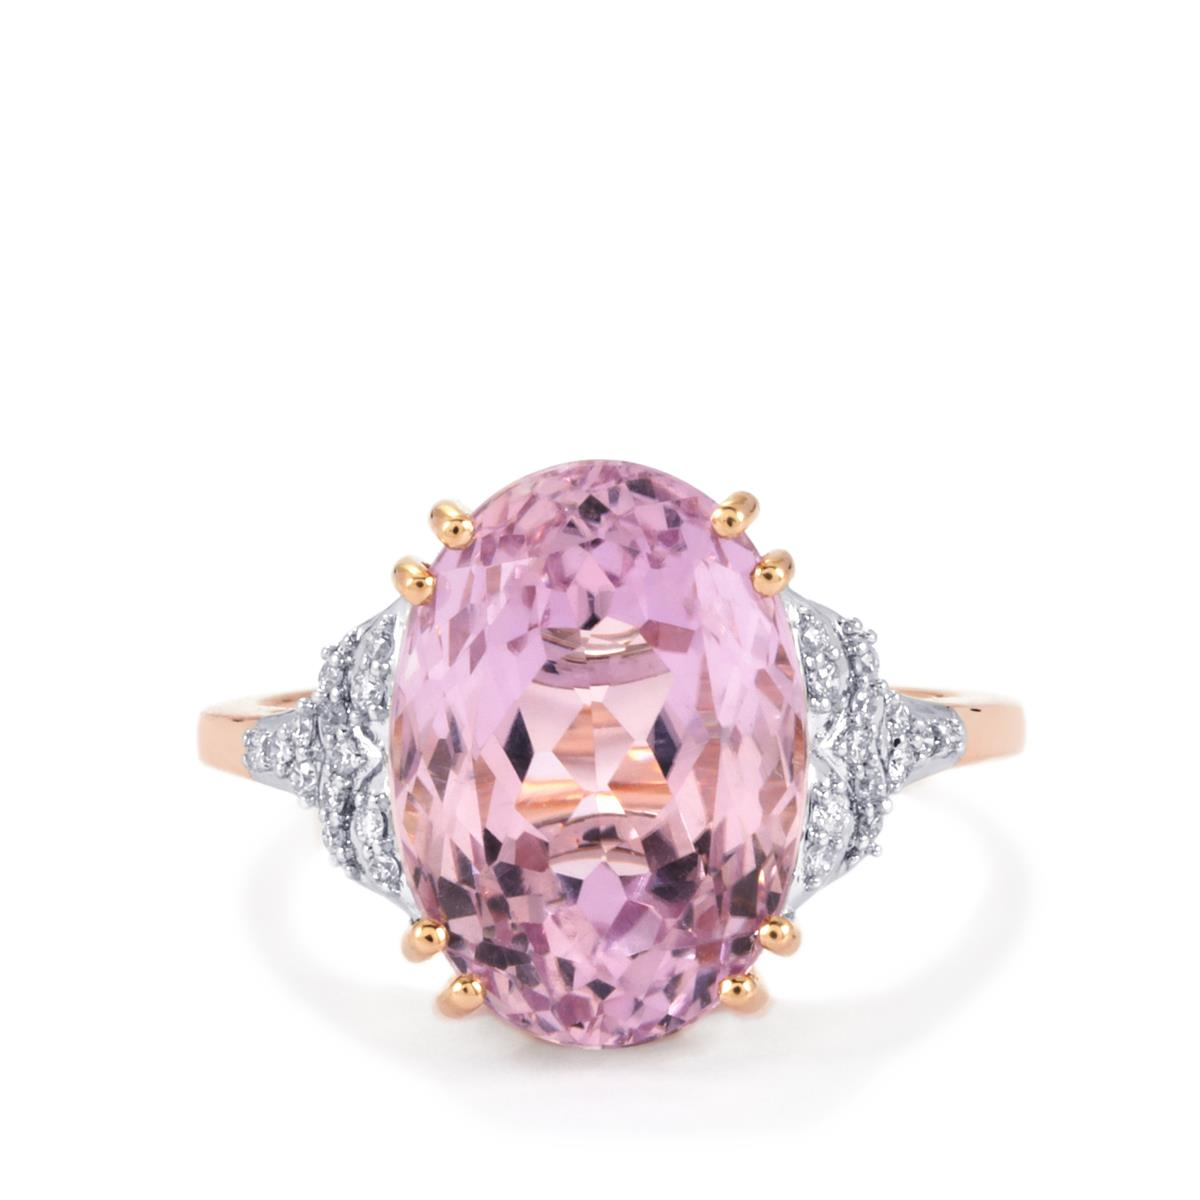 Mawi Kunzite Ring with Diamond in 18k Rose Gold 8.09cts | HLPS02 ...